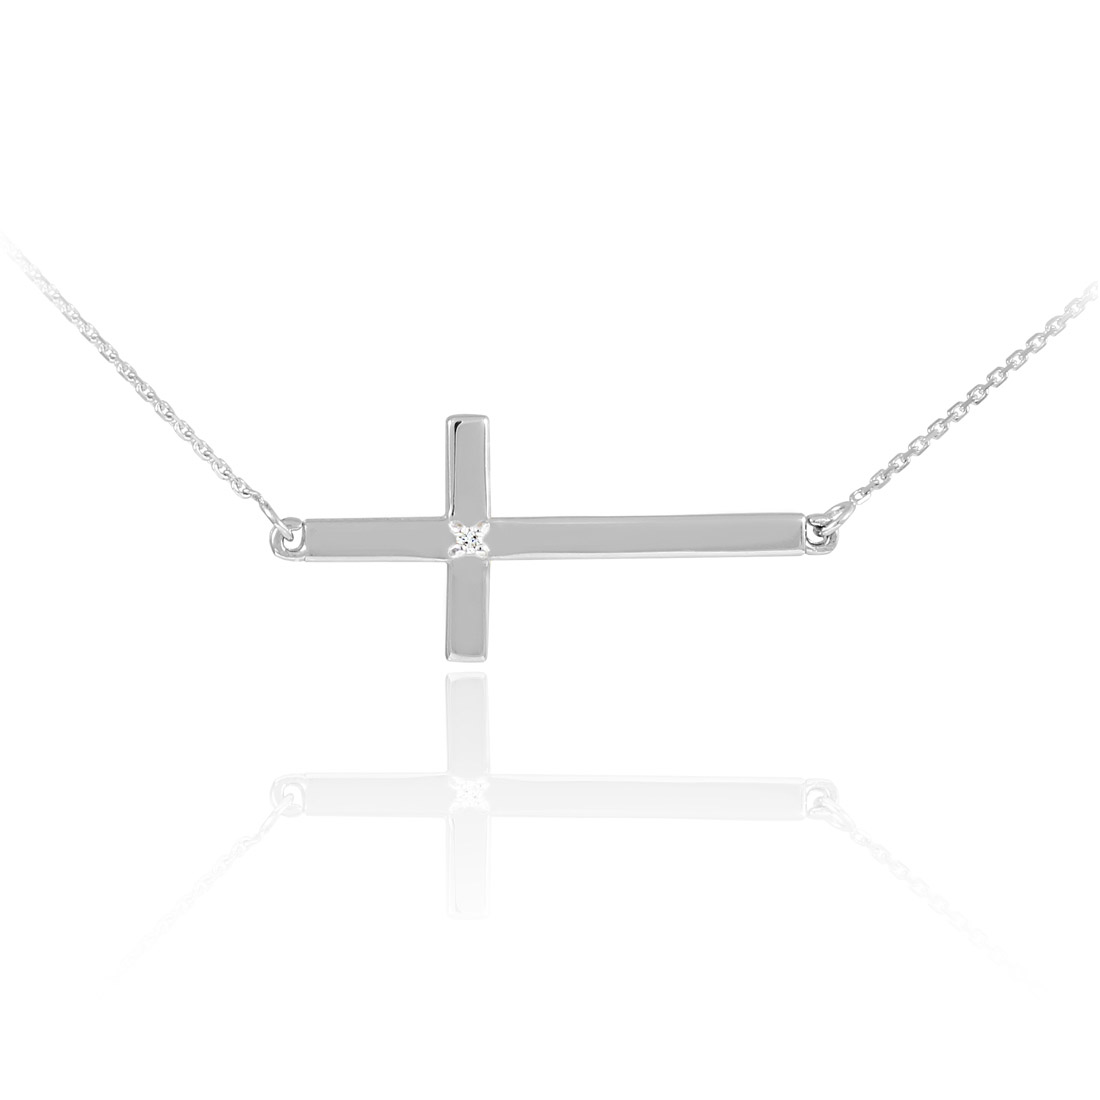 Diamond sideways cross pendant necklace in 9ct white gold gold diamond sideways cross pendant necklace in 9ct white gold gold boutique mozeypictures Images